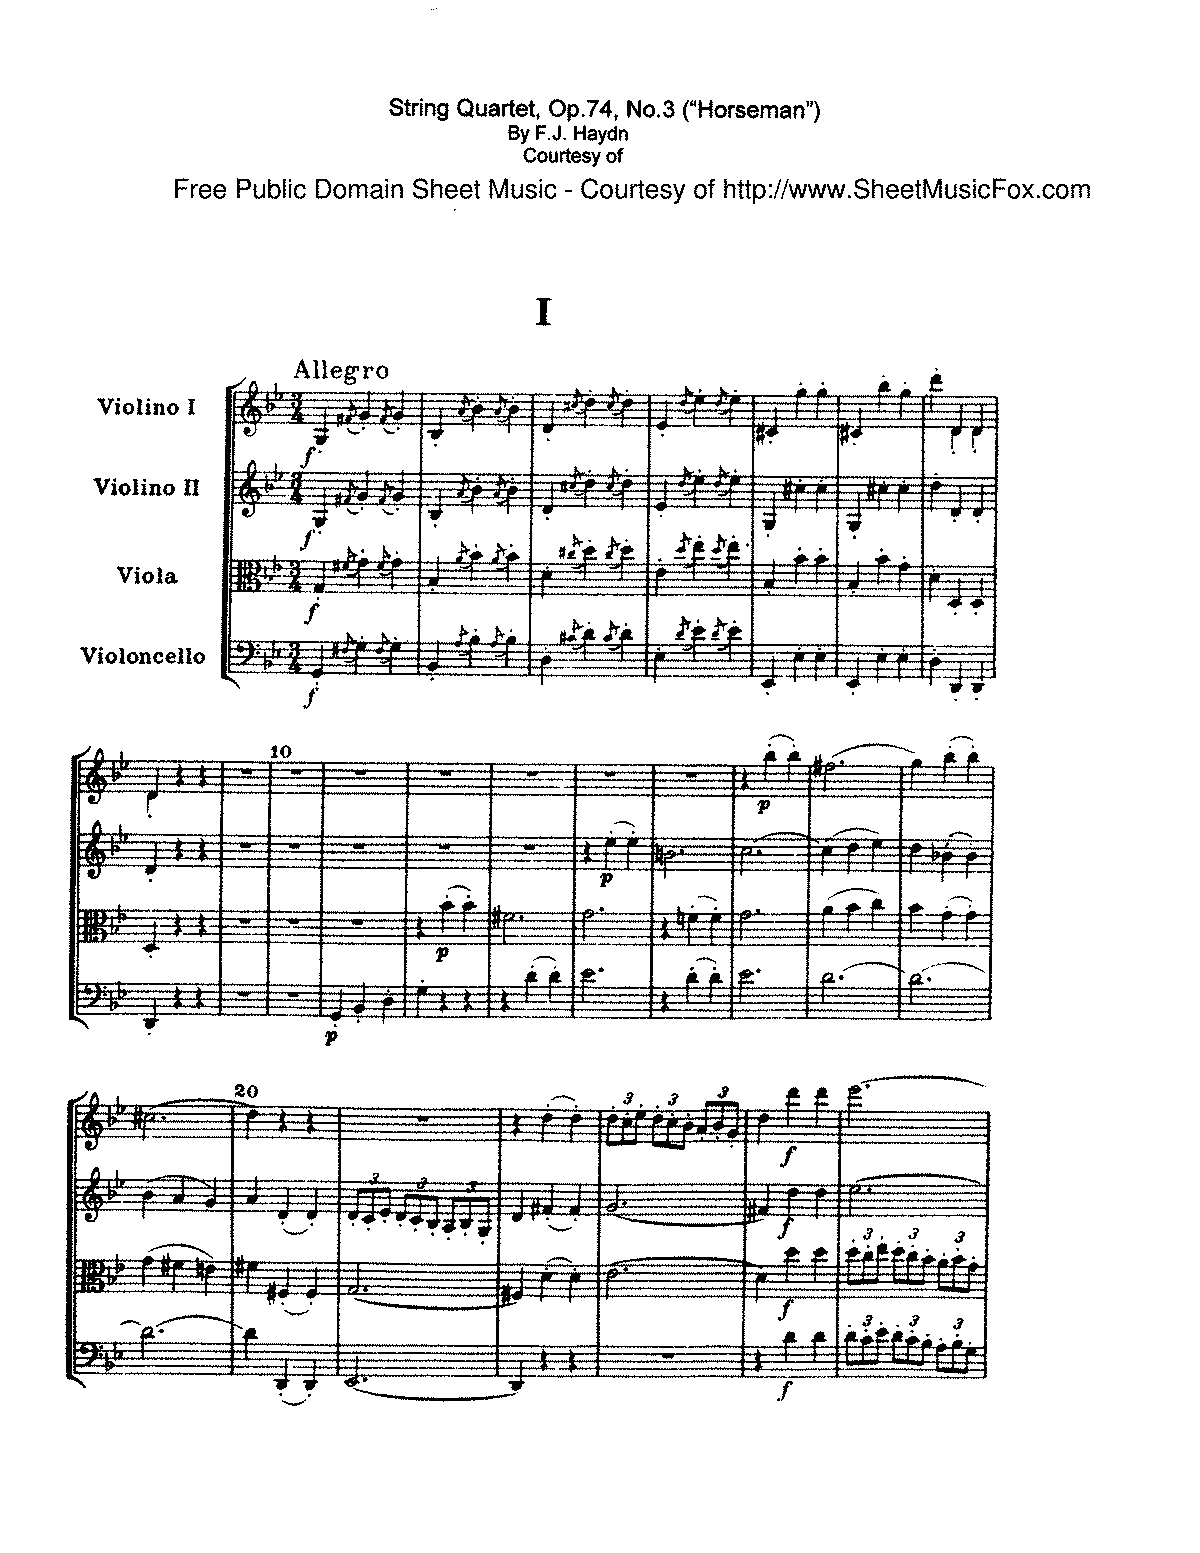 Haydn - String Quartet Op.74 No.3 - I. Allegro.pdf